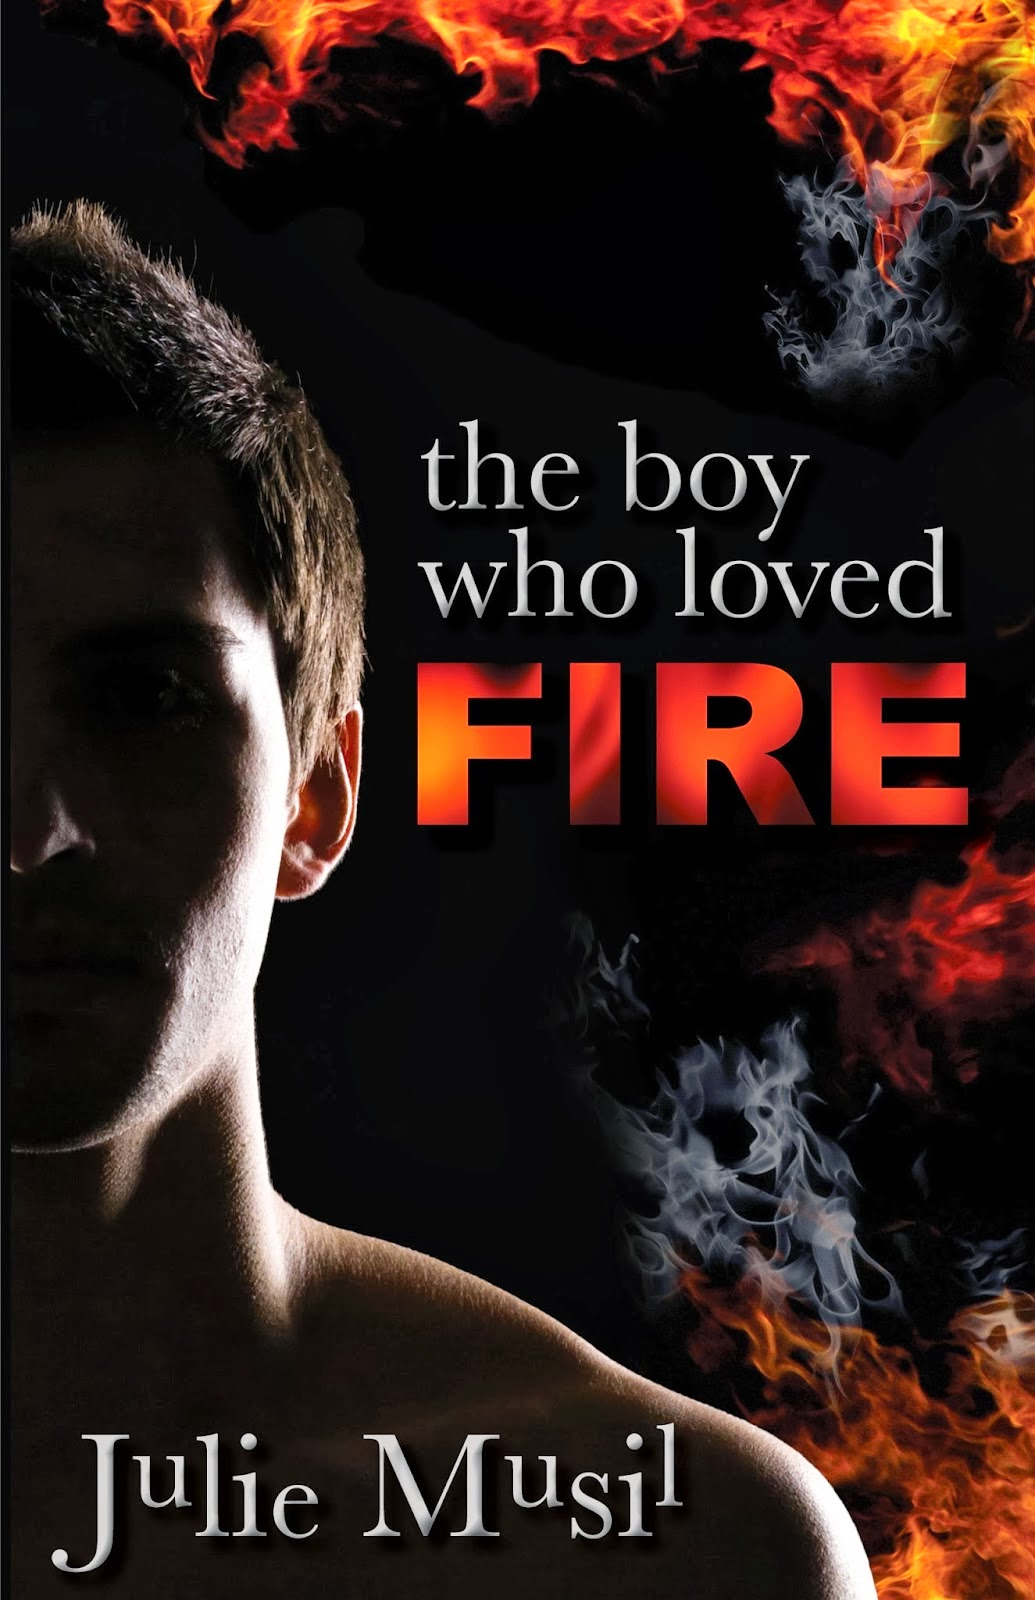 http://www.amazon.com/Boy-Who-Loved-Fire-ebook/dp/B00H9MY16Q/ref=sr_1_1?ie=UTF8&qid=1391356747&sr=8-1&keywords=the+boy+who+loved+fire